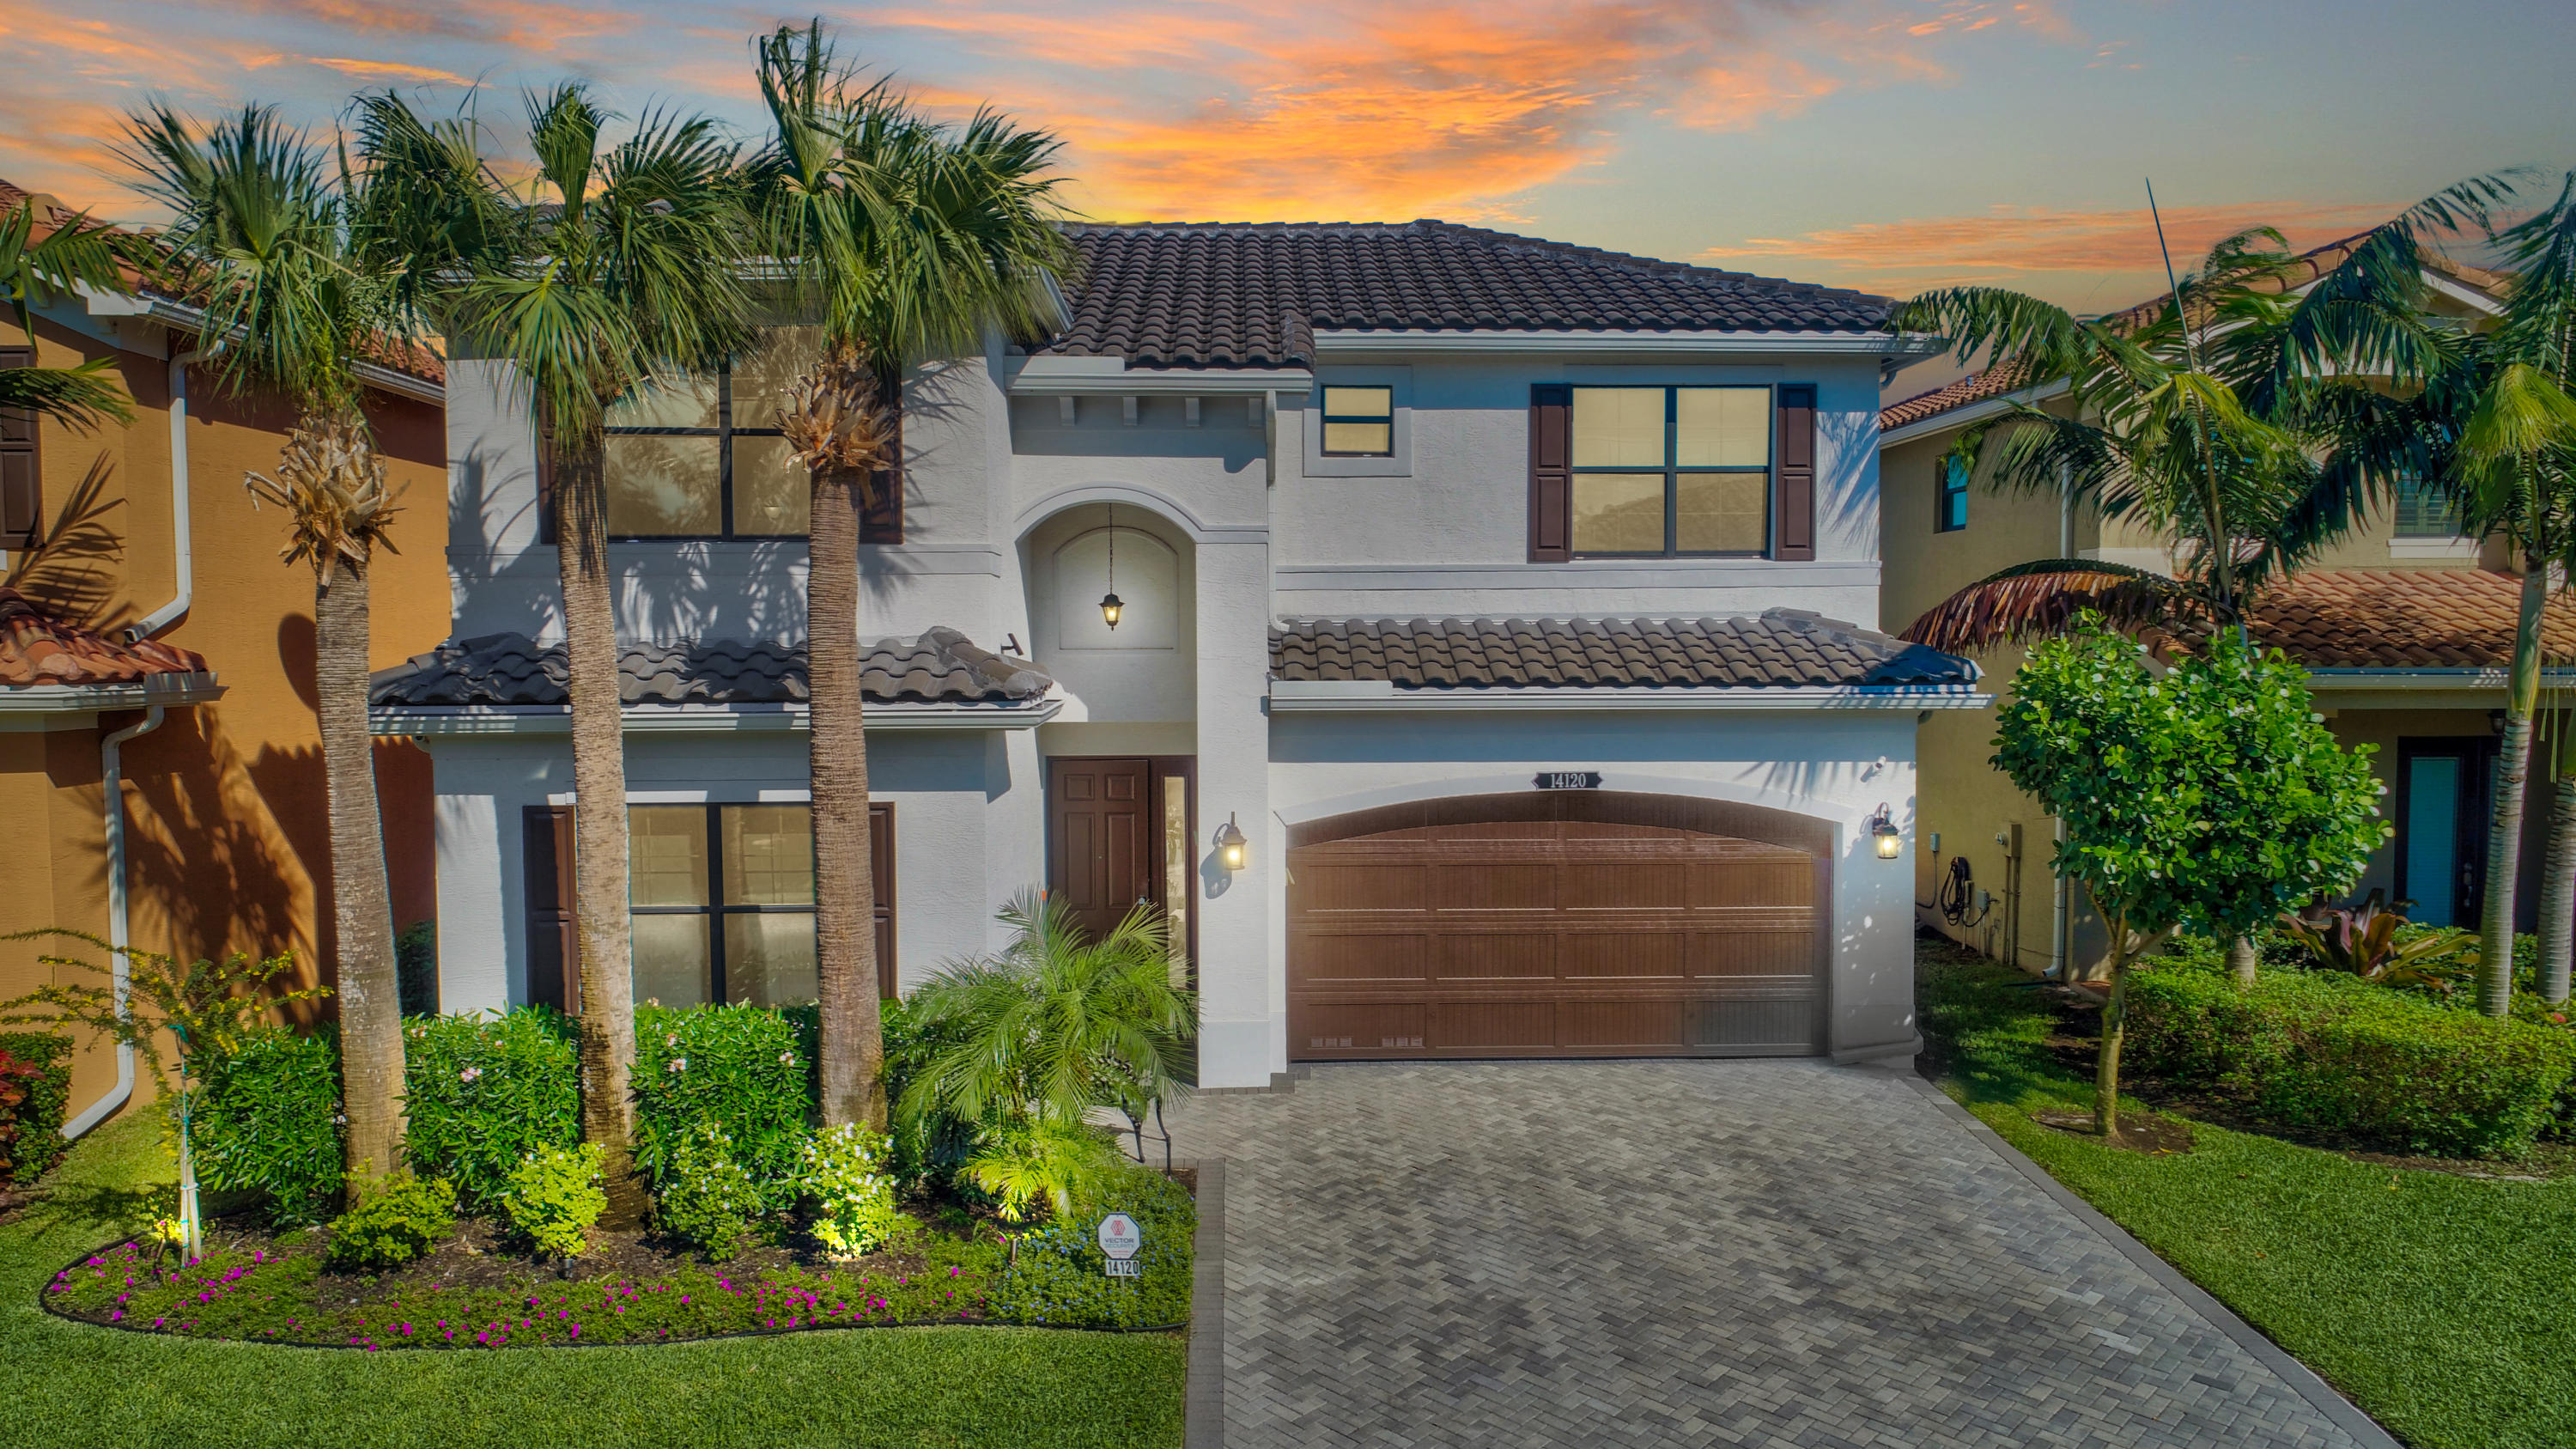 14120 Paverstone Terrace, Delray Beach, Florida 33446, 4 Bedrooms Bedrooms, ,3 BathroomsBathrooms,Residential,For Sale,Paverstone,RX-10605745